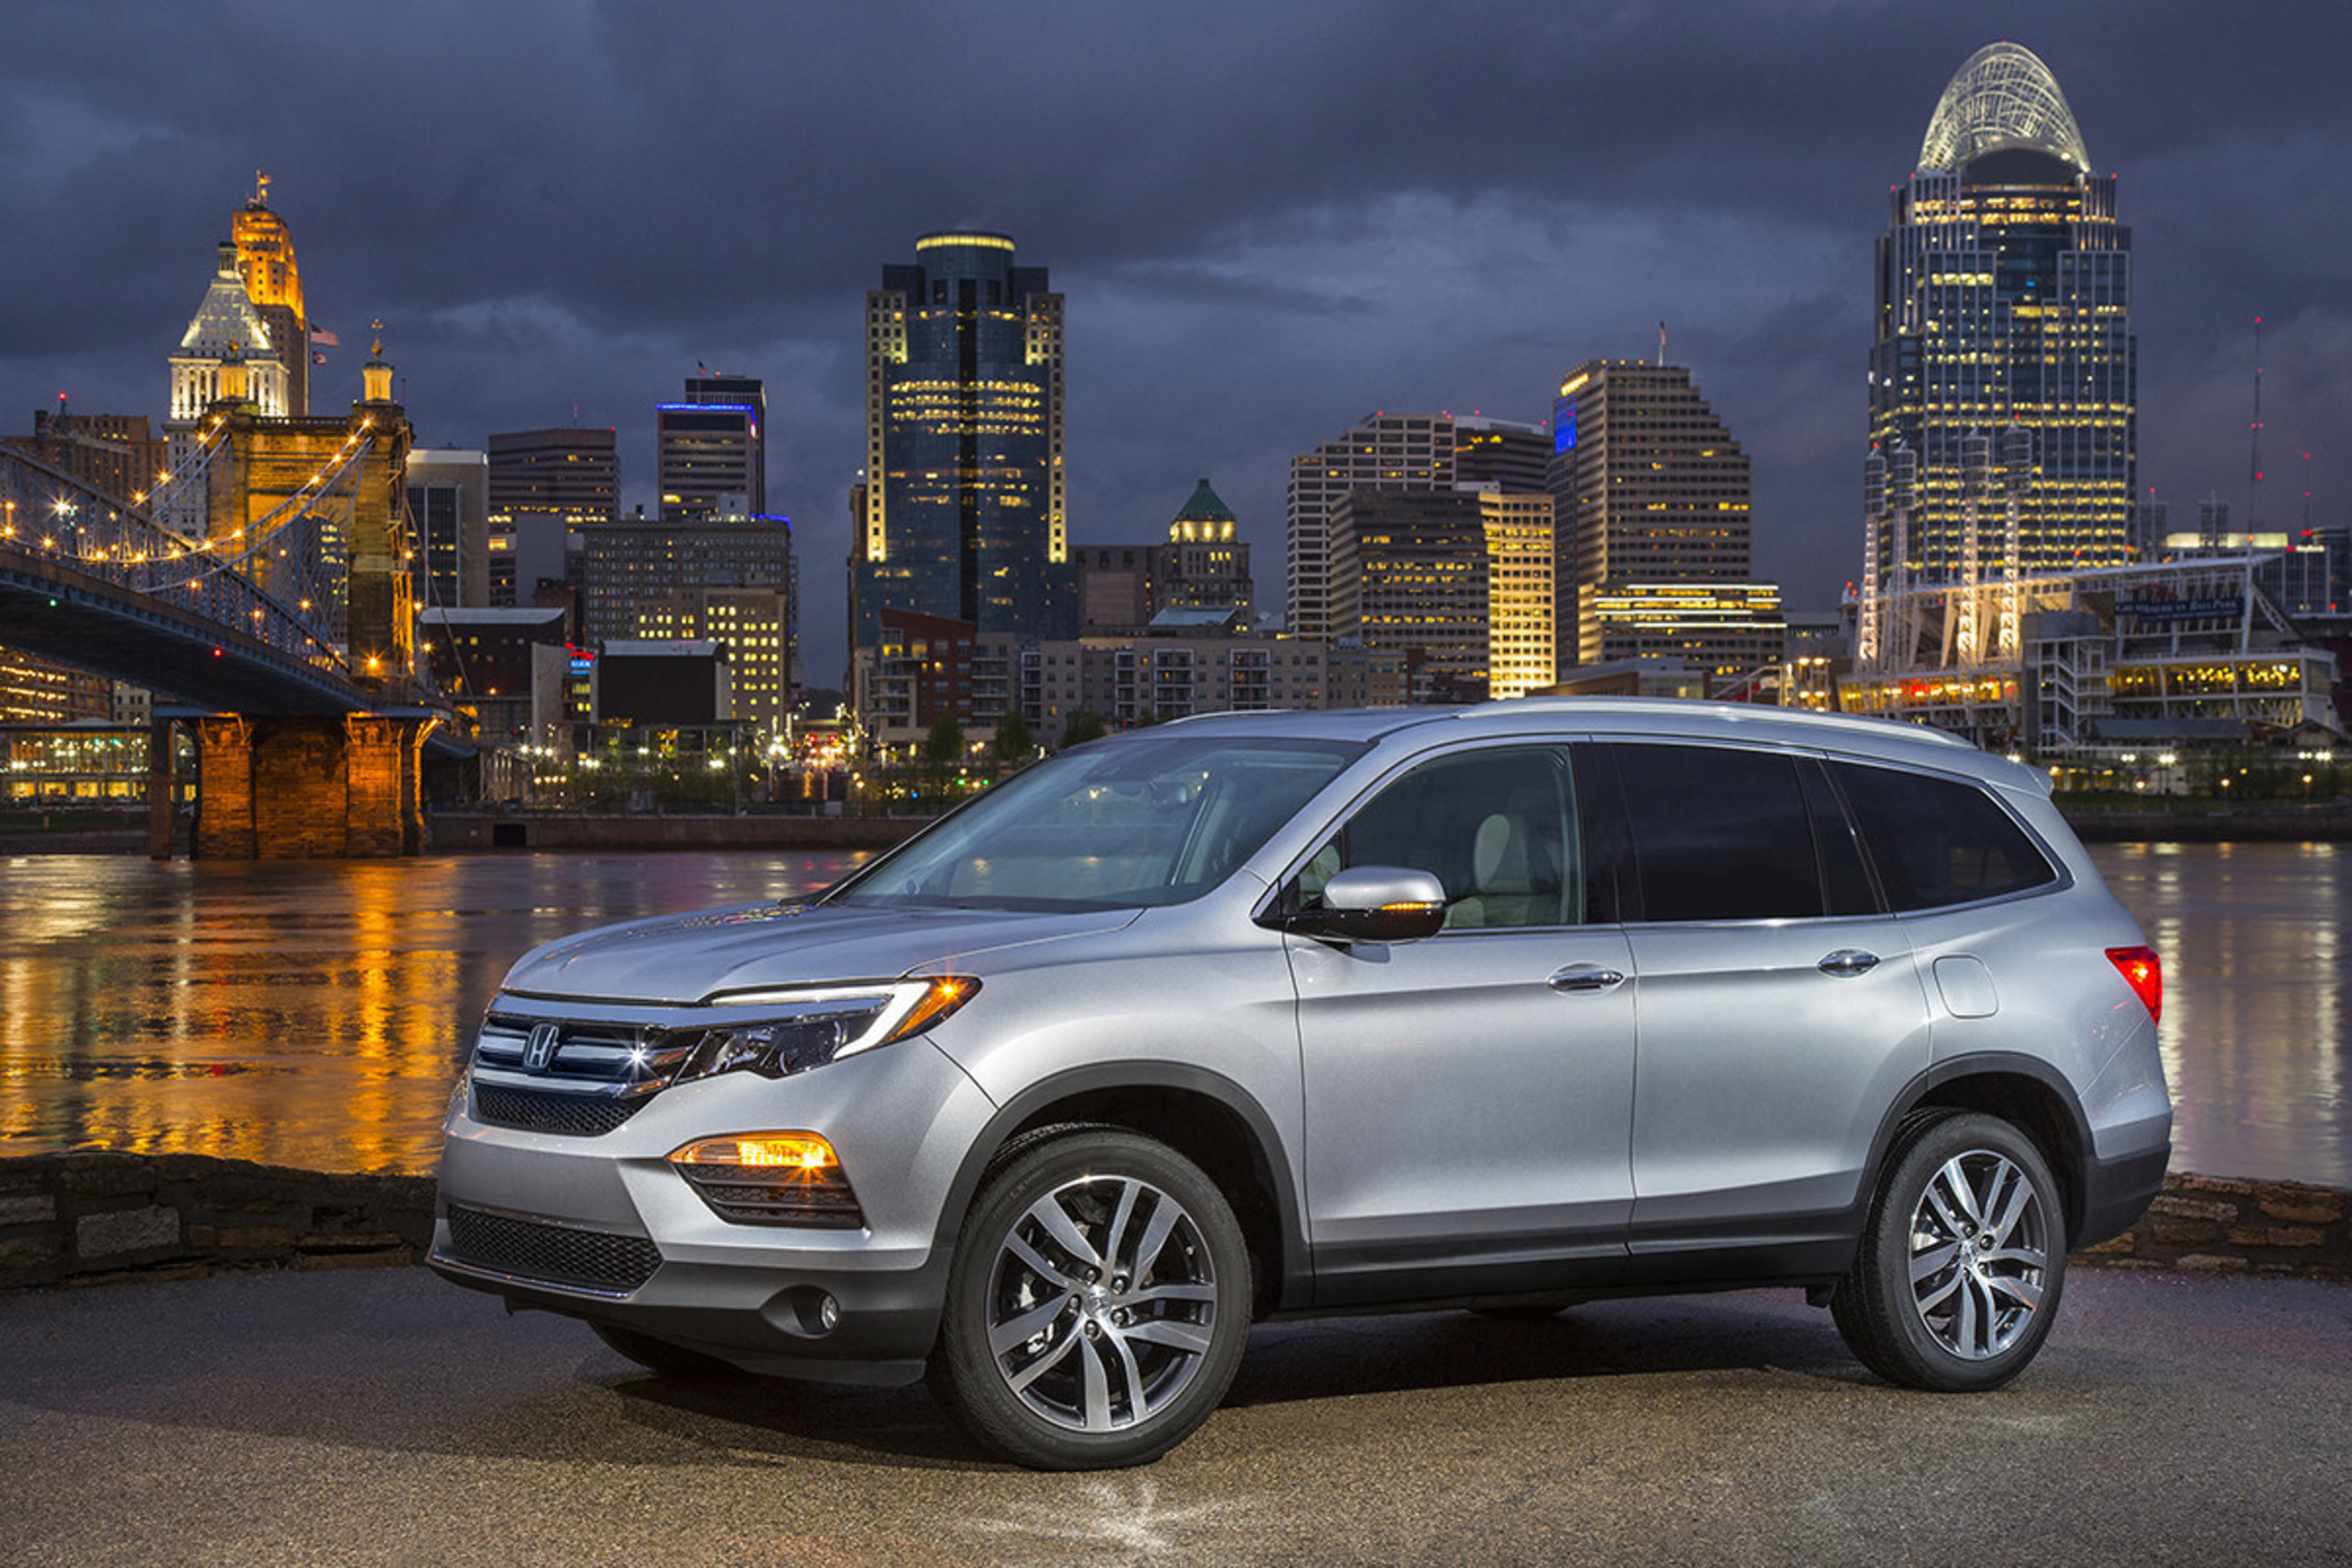 All New 2016 Honda Pilot The Fully Redesigned Three Row Honda SUV